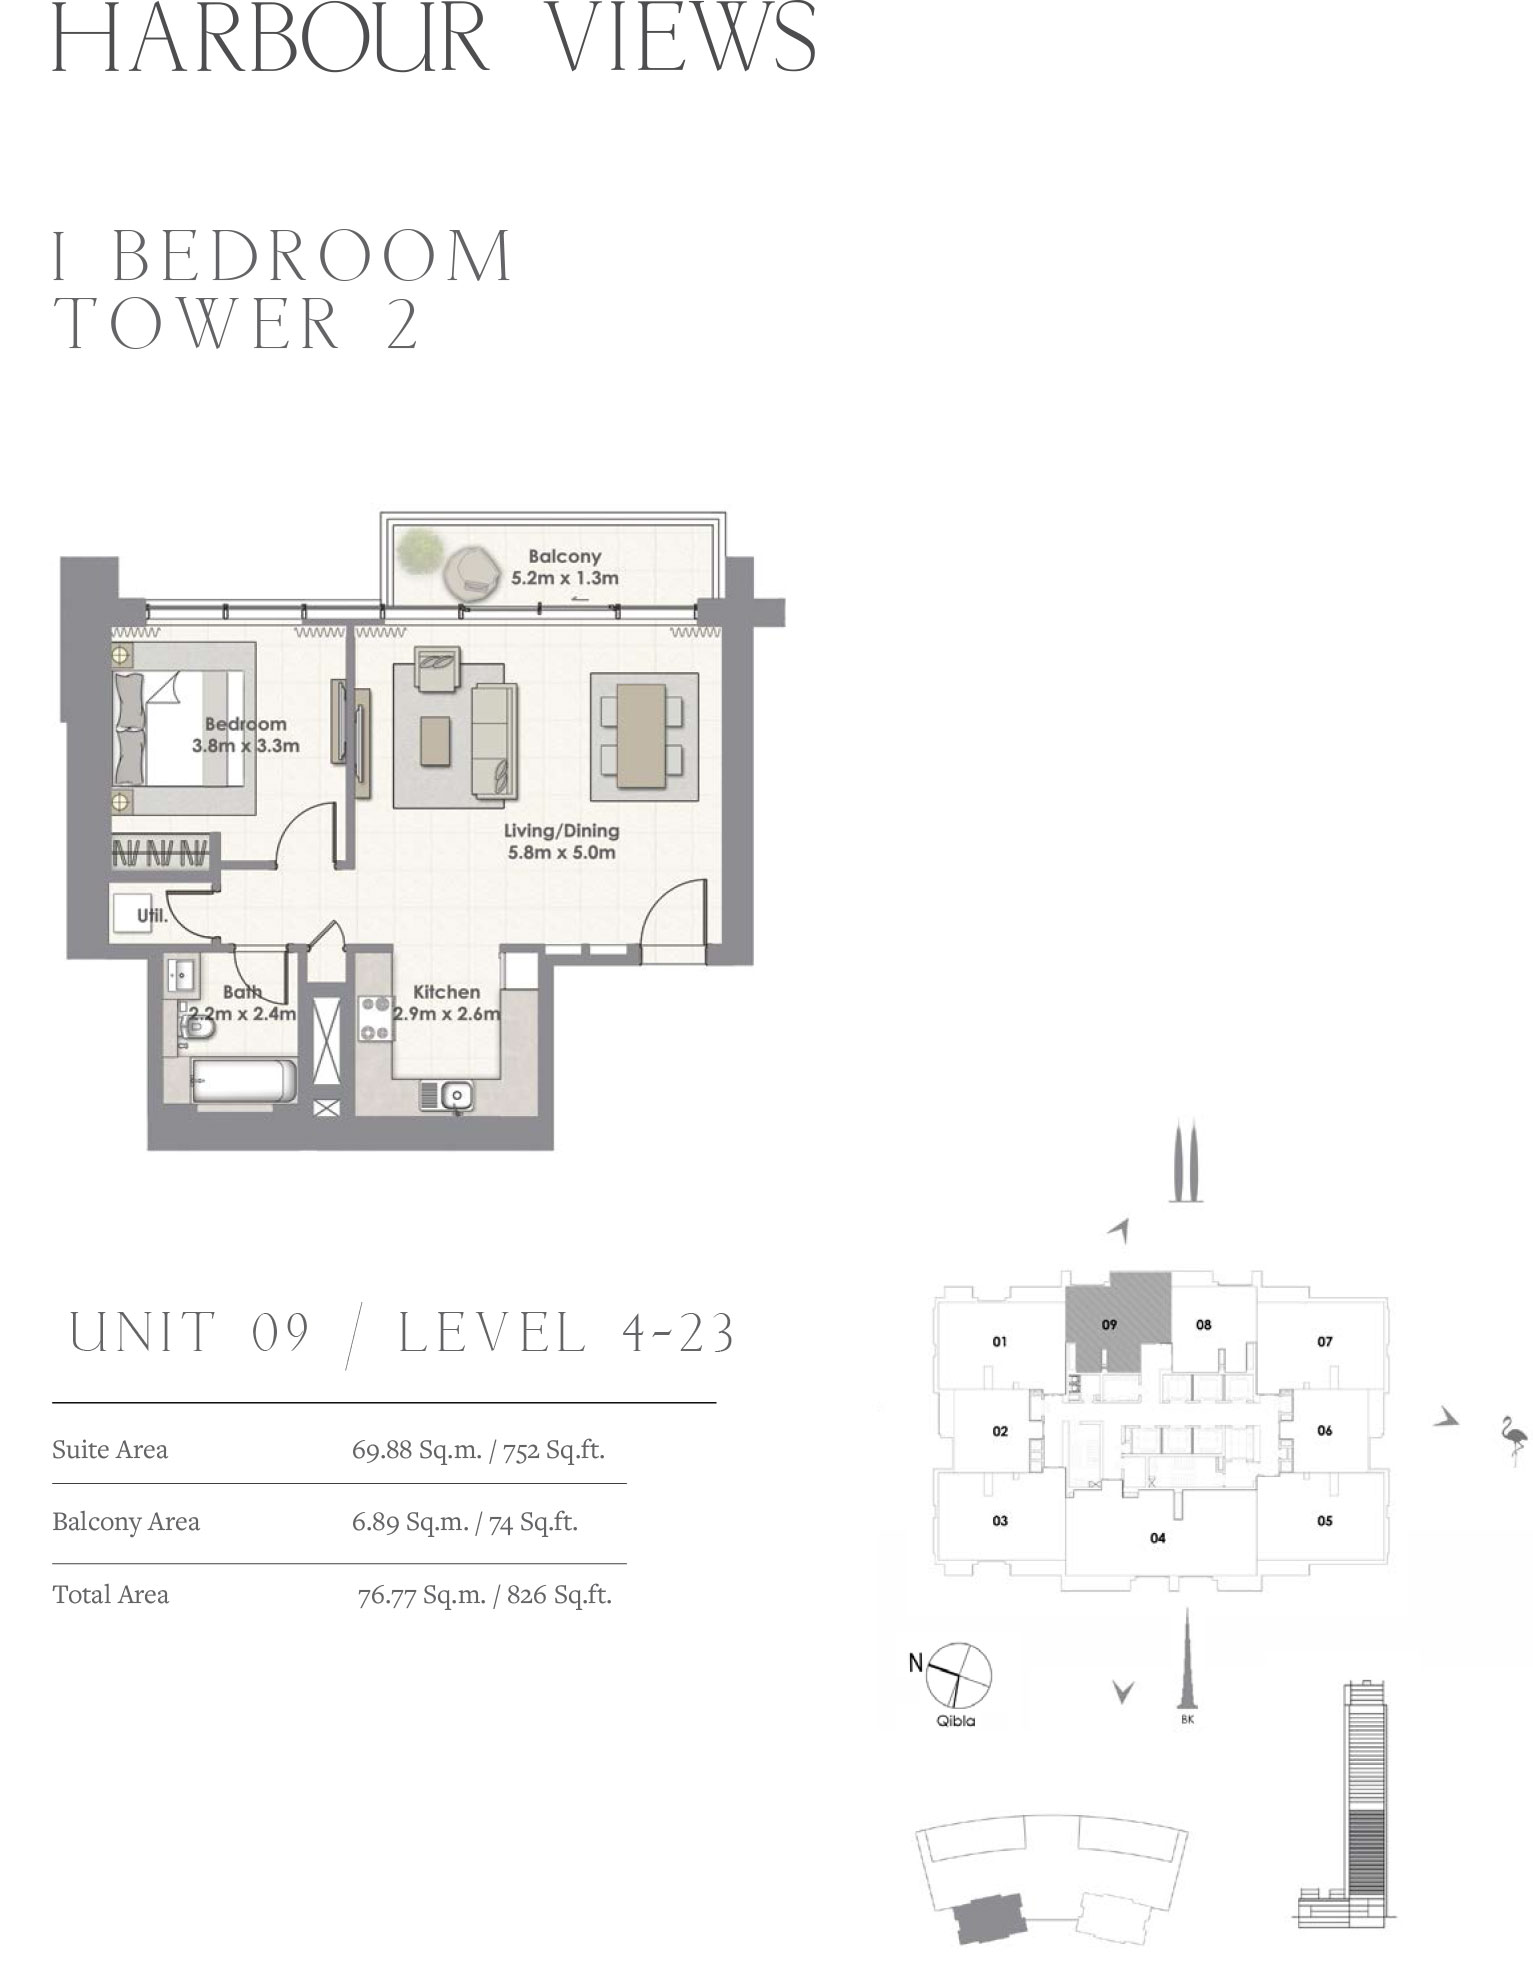 1 Bedroom Tower 2, Unit 09/Level 4-23